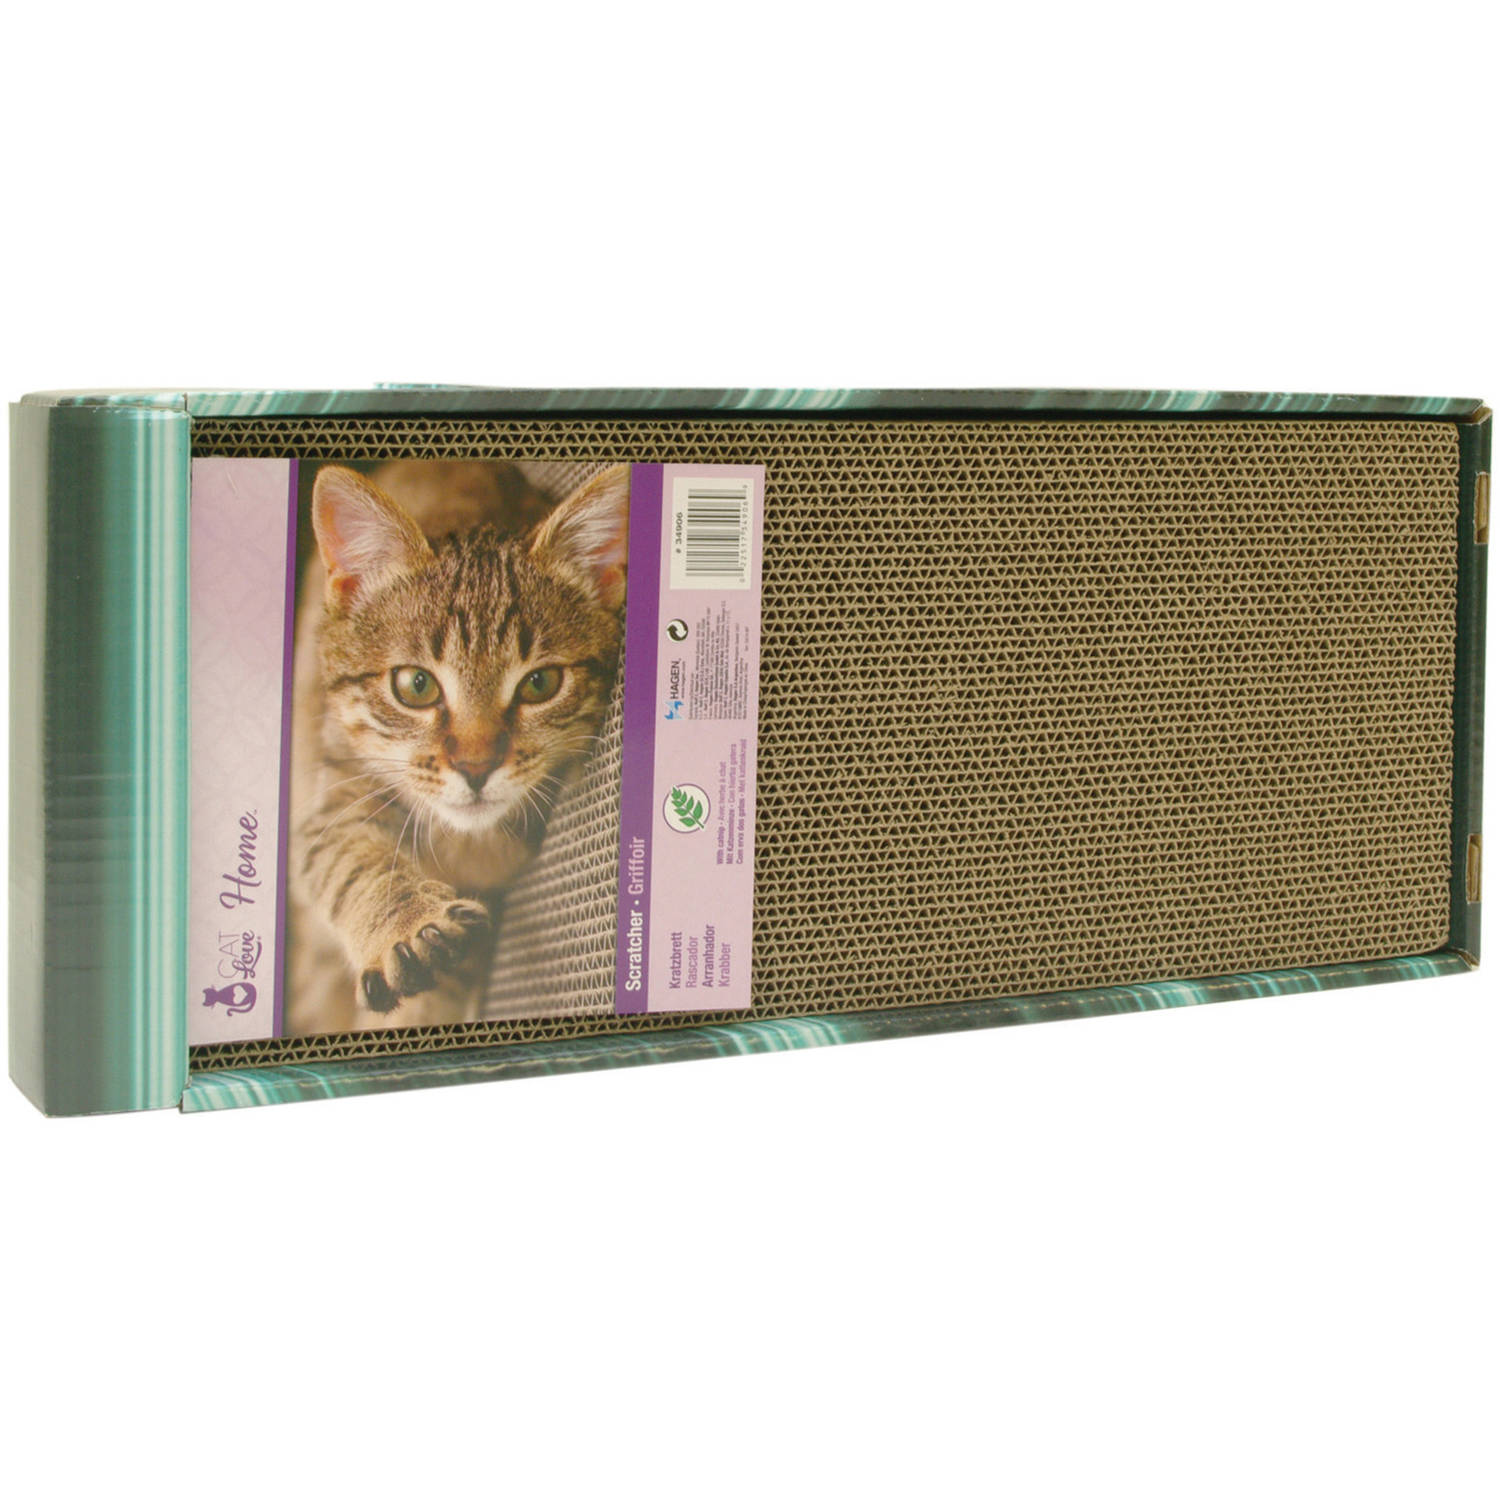 Cat Love Scratcher with Catnip, Incline by Cat Love